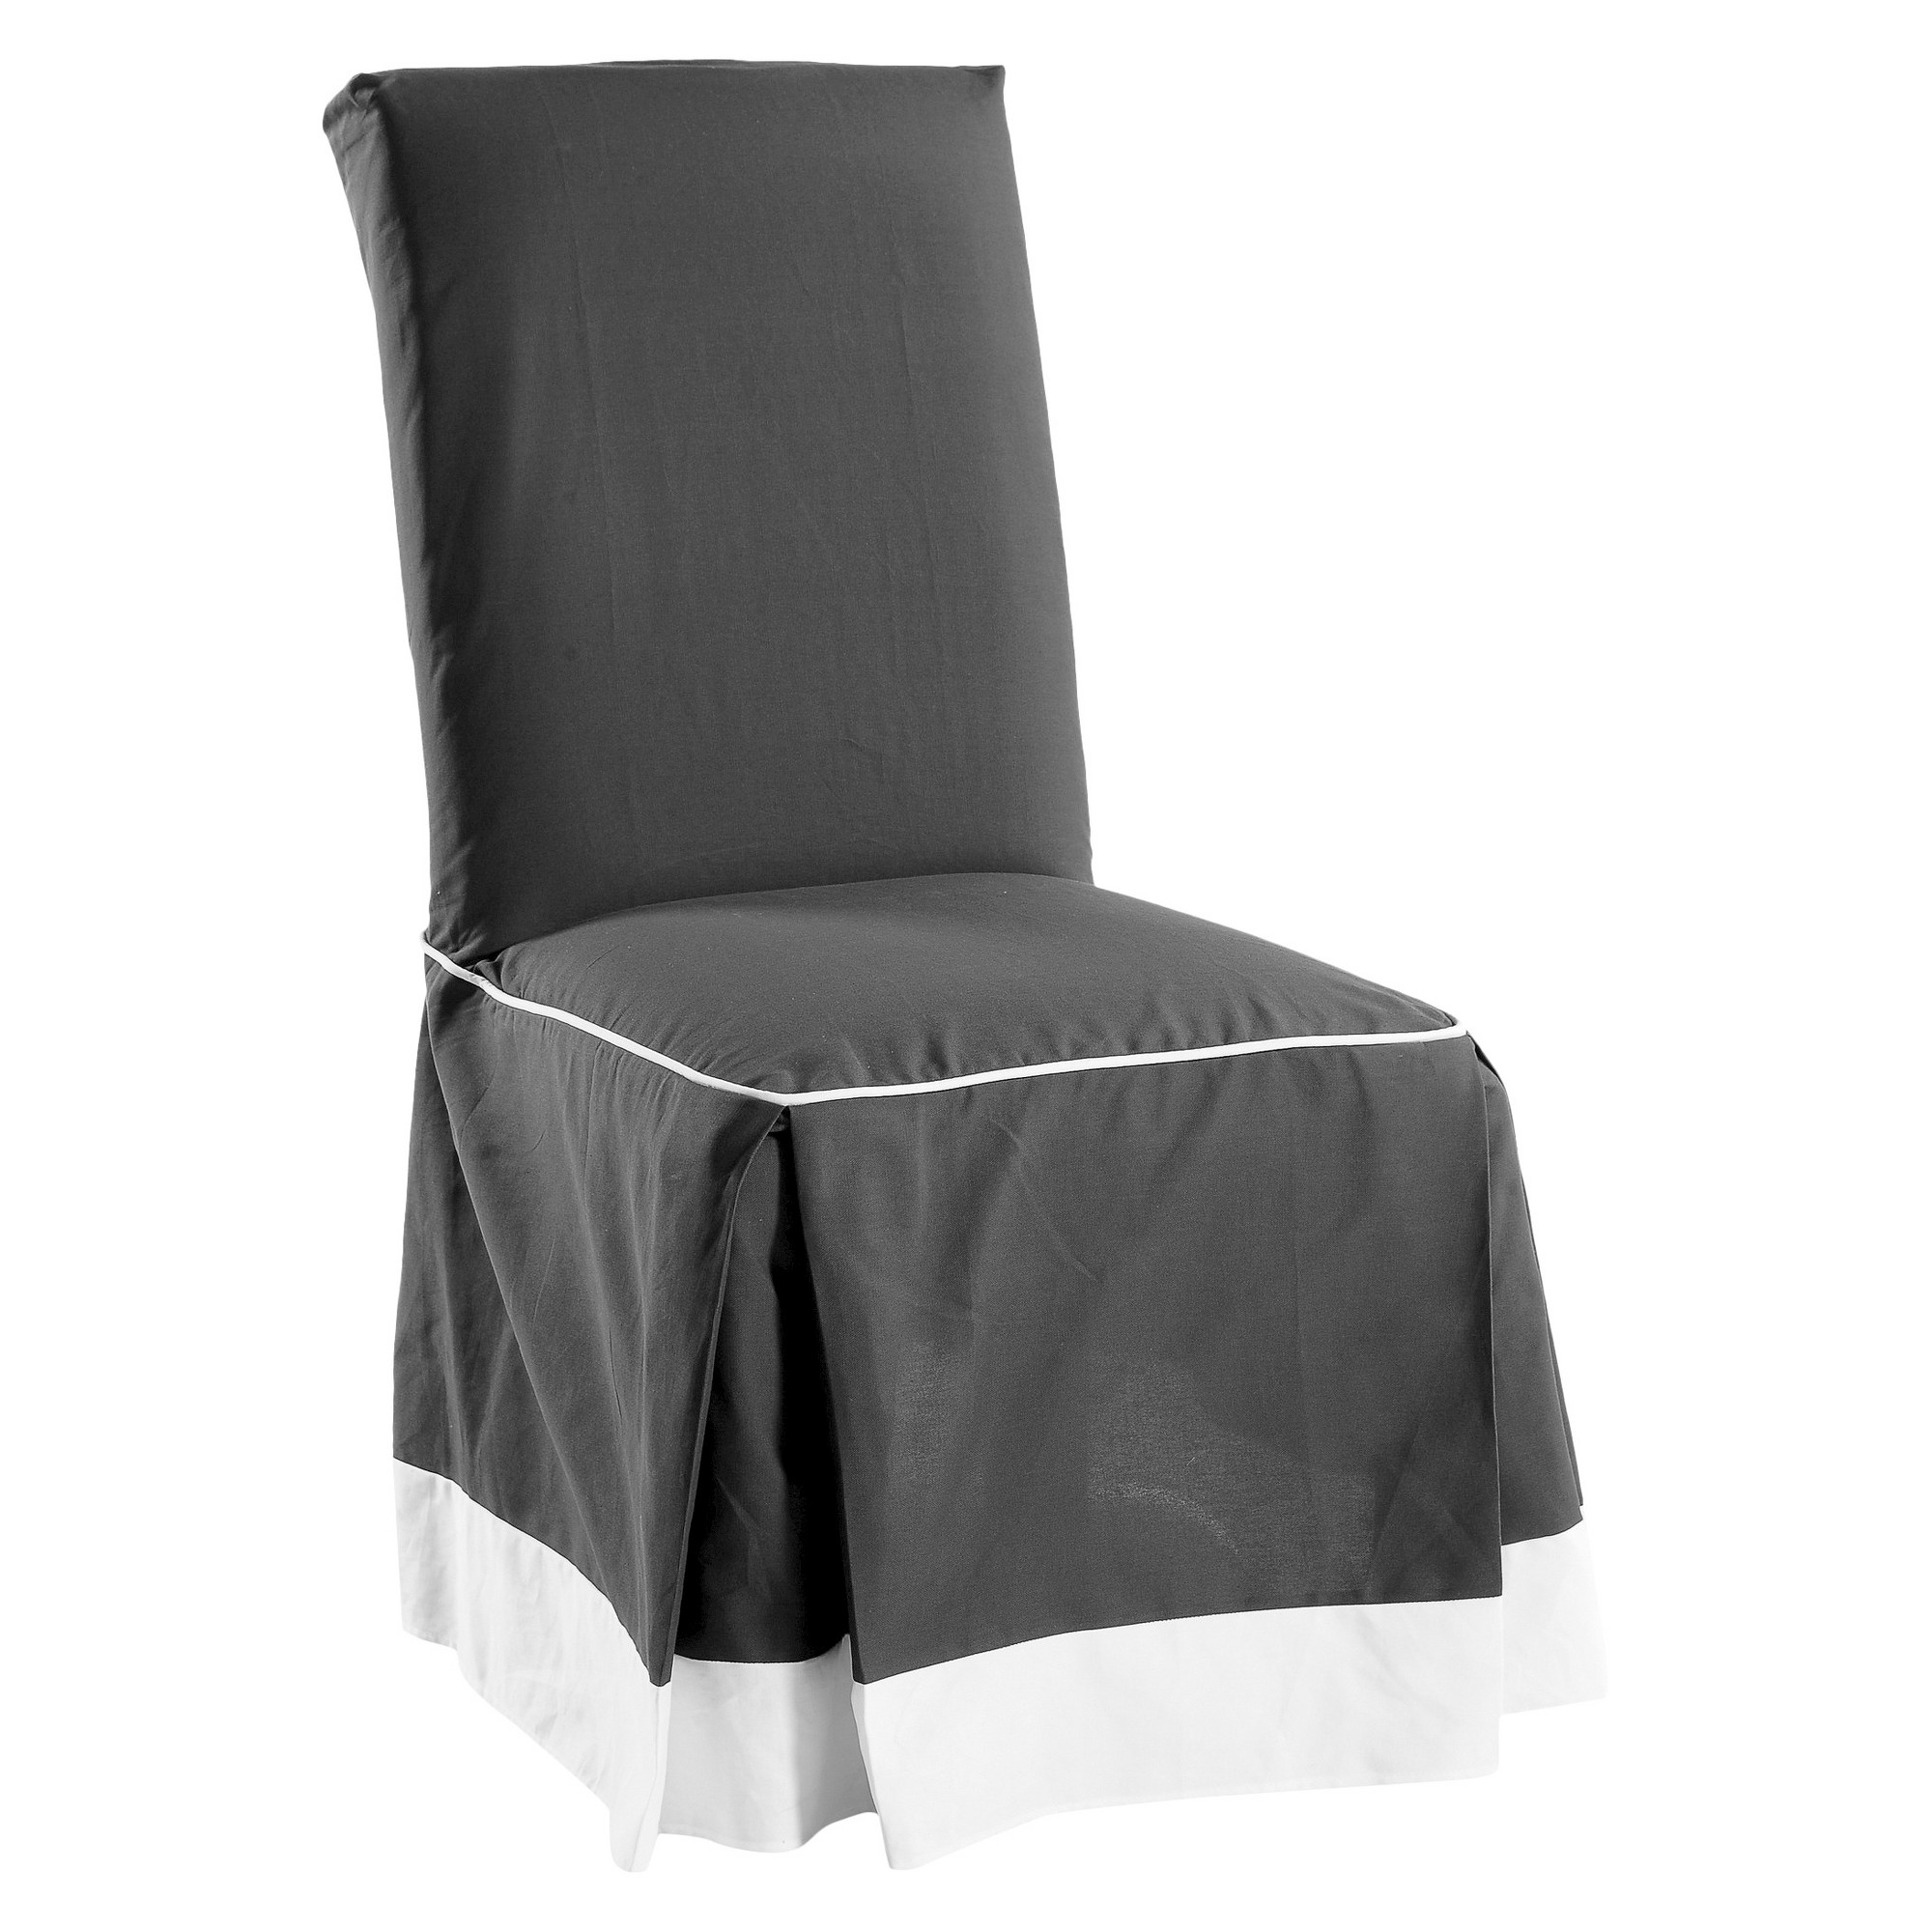 Black/White Cotton Duck Two Tone Dining Chair Slipcover